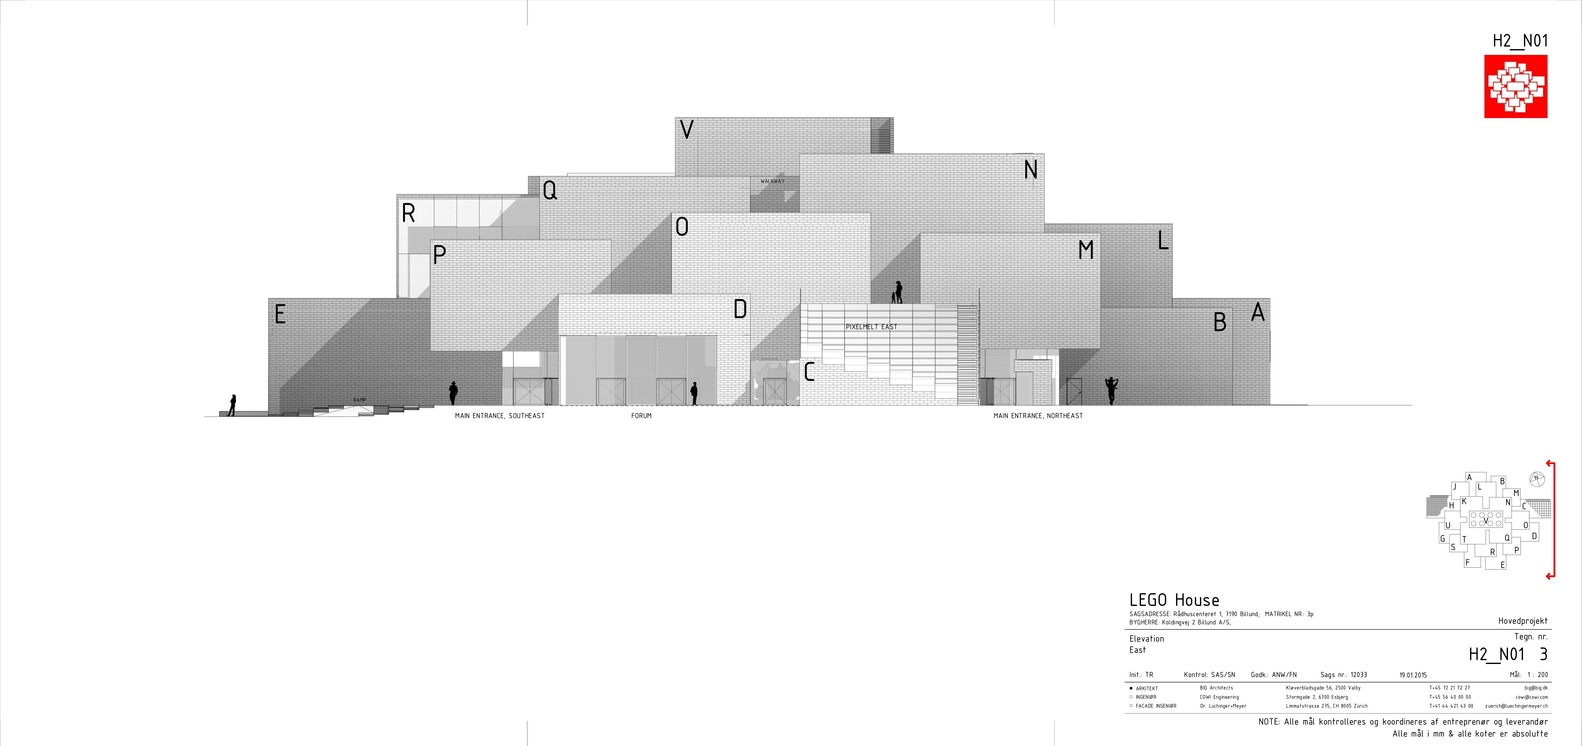 LEGO House,East Facade Elevation